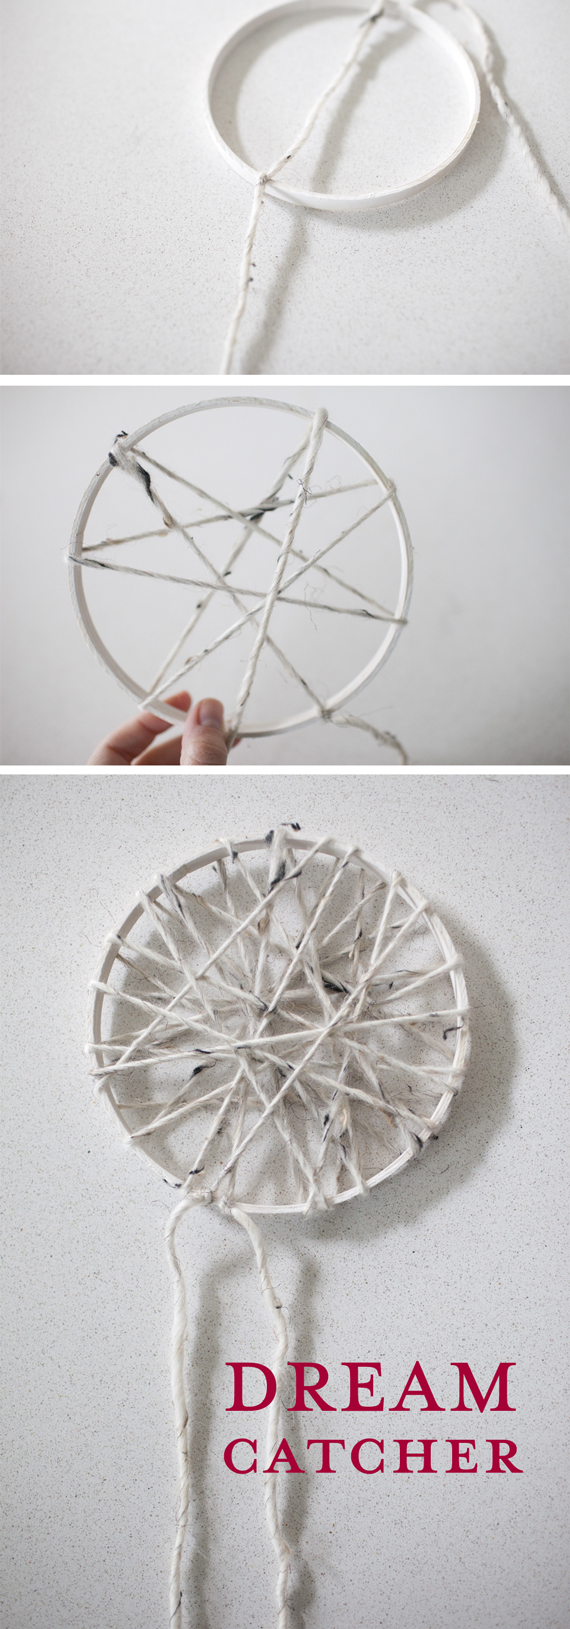 DIY Dreamcatcher step by step